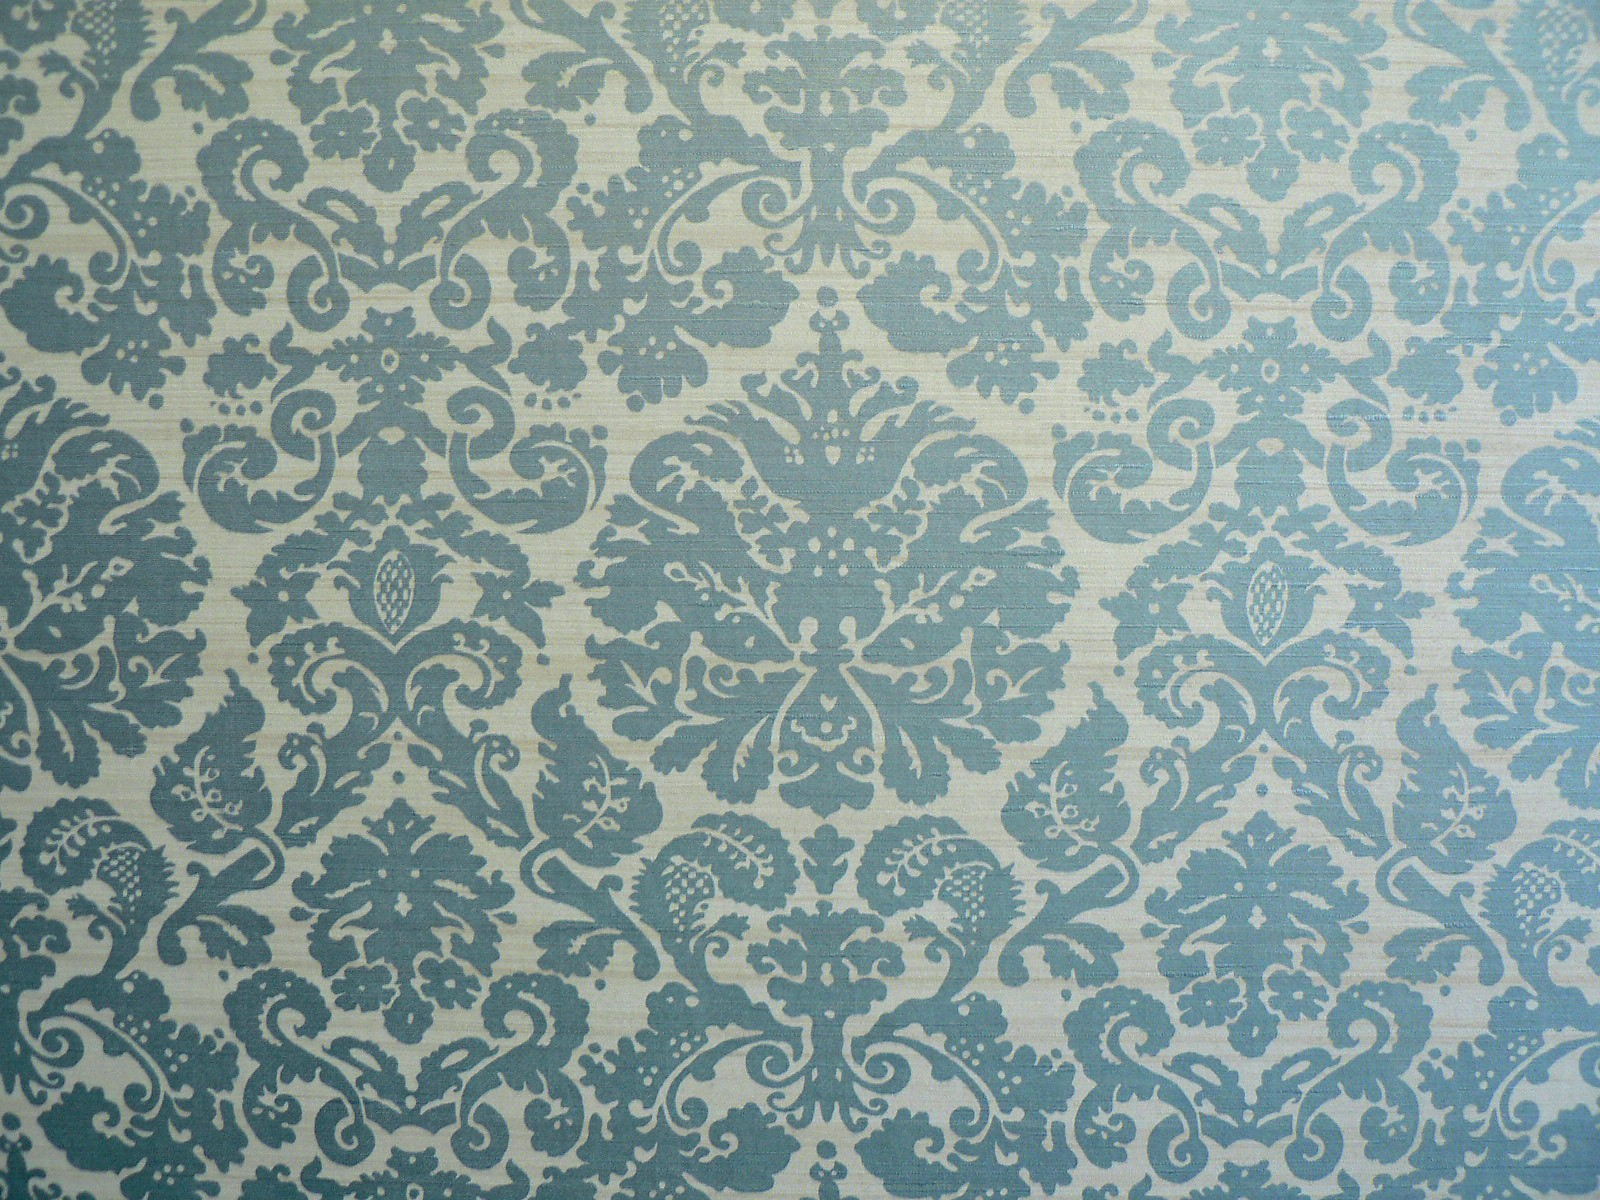 Pattern Vintage Wallpaper 1600x1200 Pattern Vintage Patterns 1600x1200